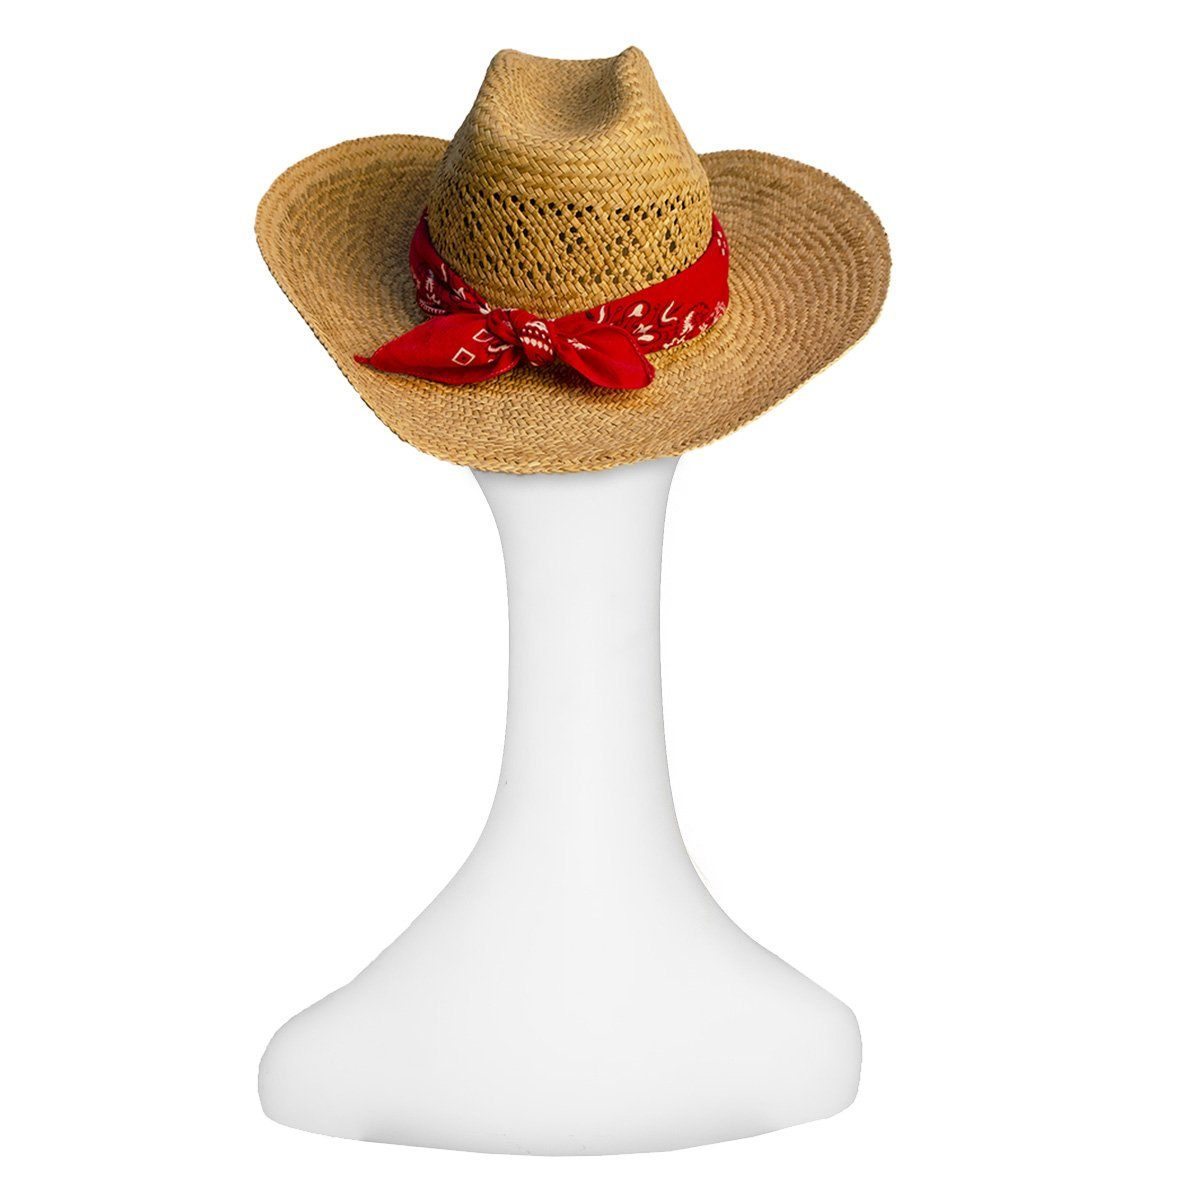 Vintage Straw Cowboy Hat with Red Bandana 4